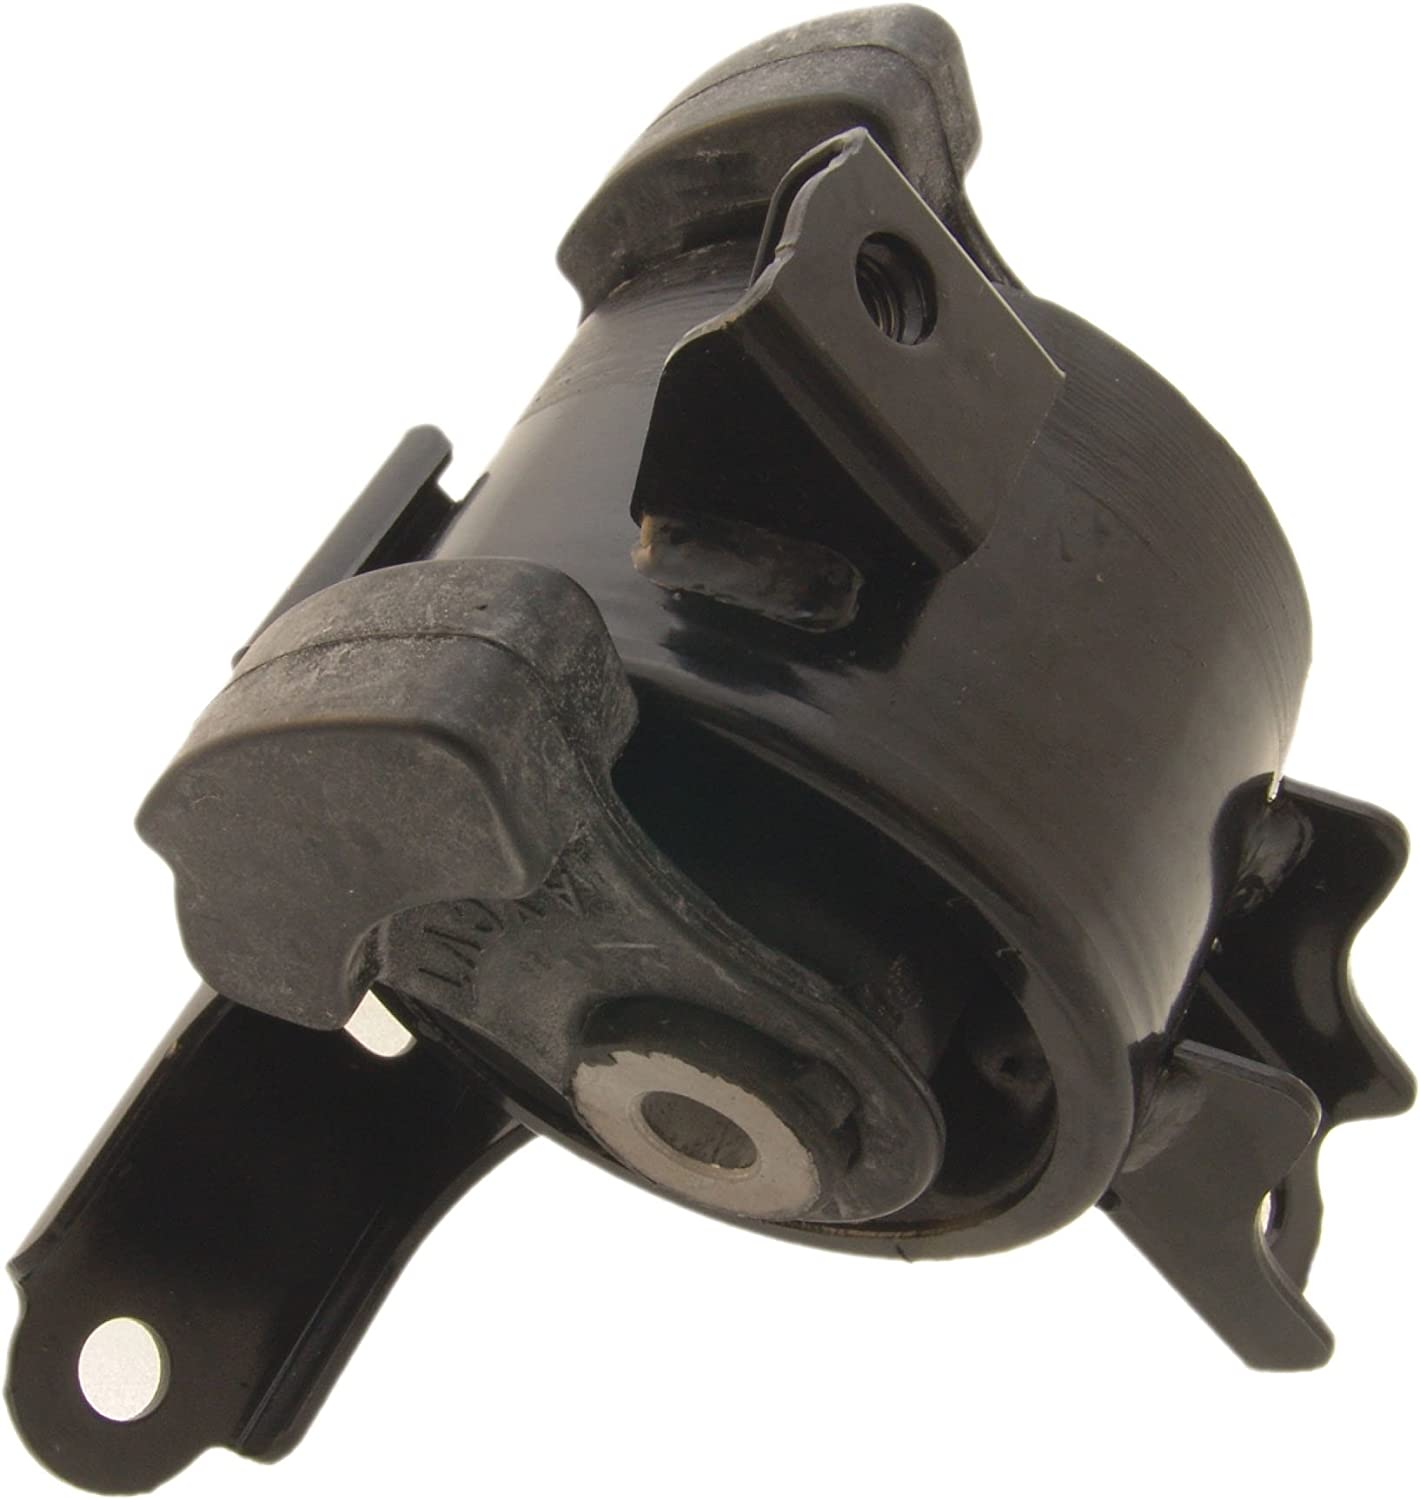 Selling rankings 50805Saa982 - Transmission Mount For Max 53% OFF Honda Febest